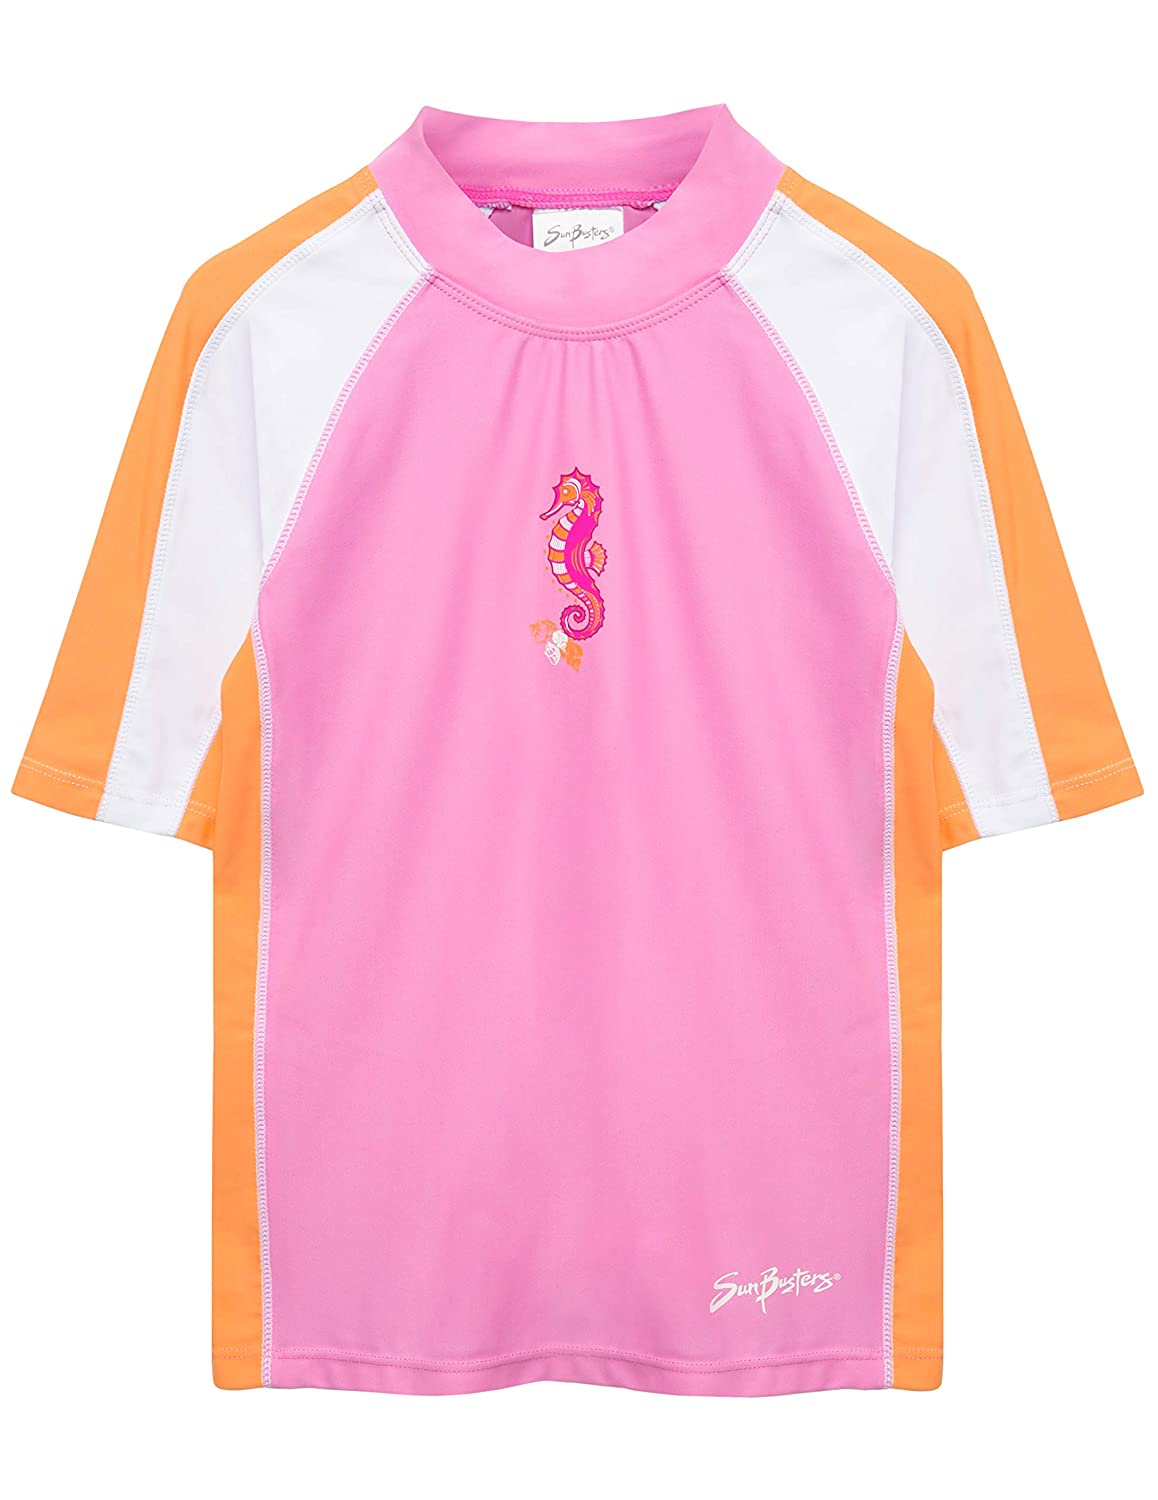 SunBusters Girls Two-Piece Short Sleeve Swimsuit Set Sun Protection UPF 50